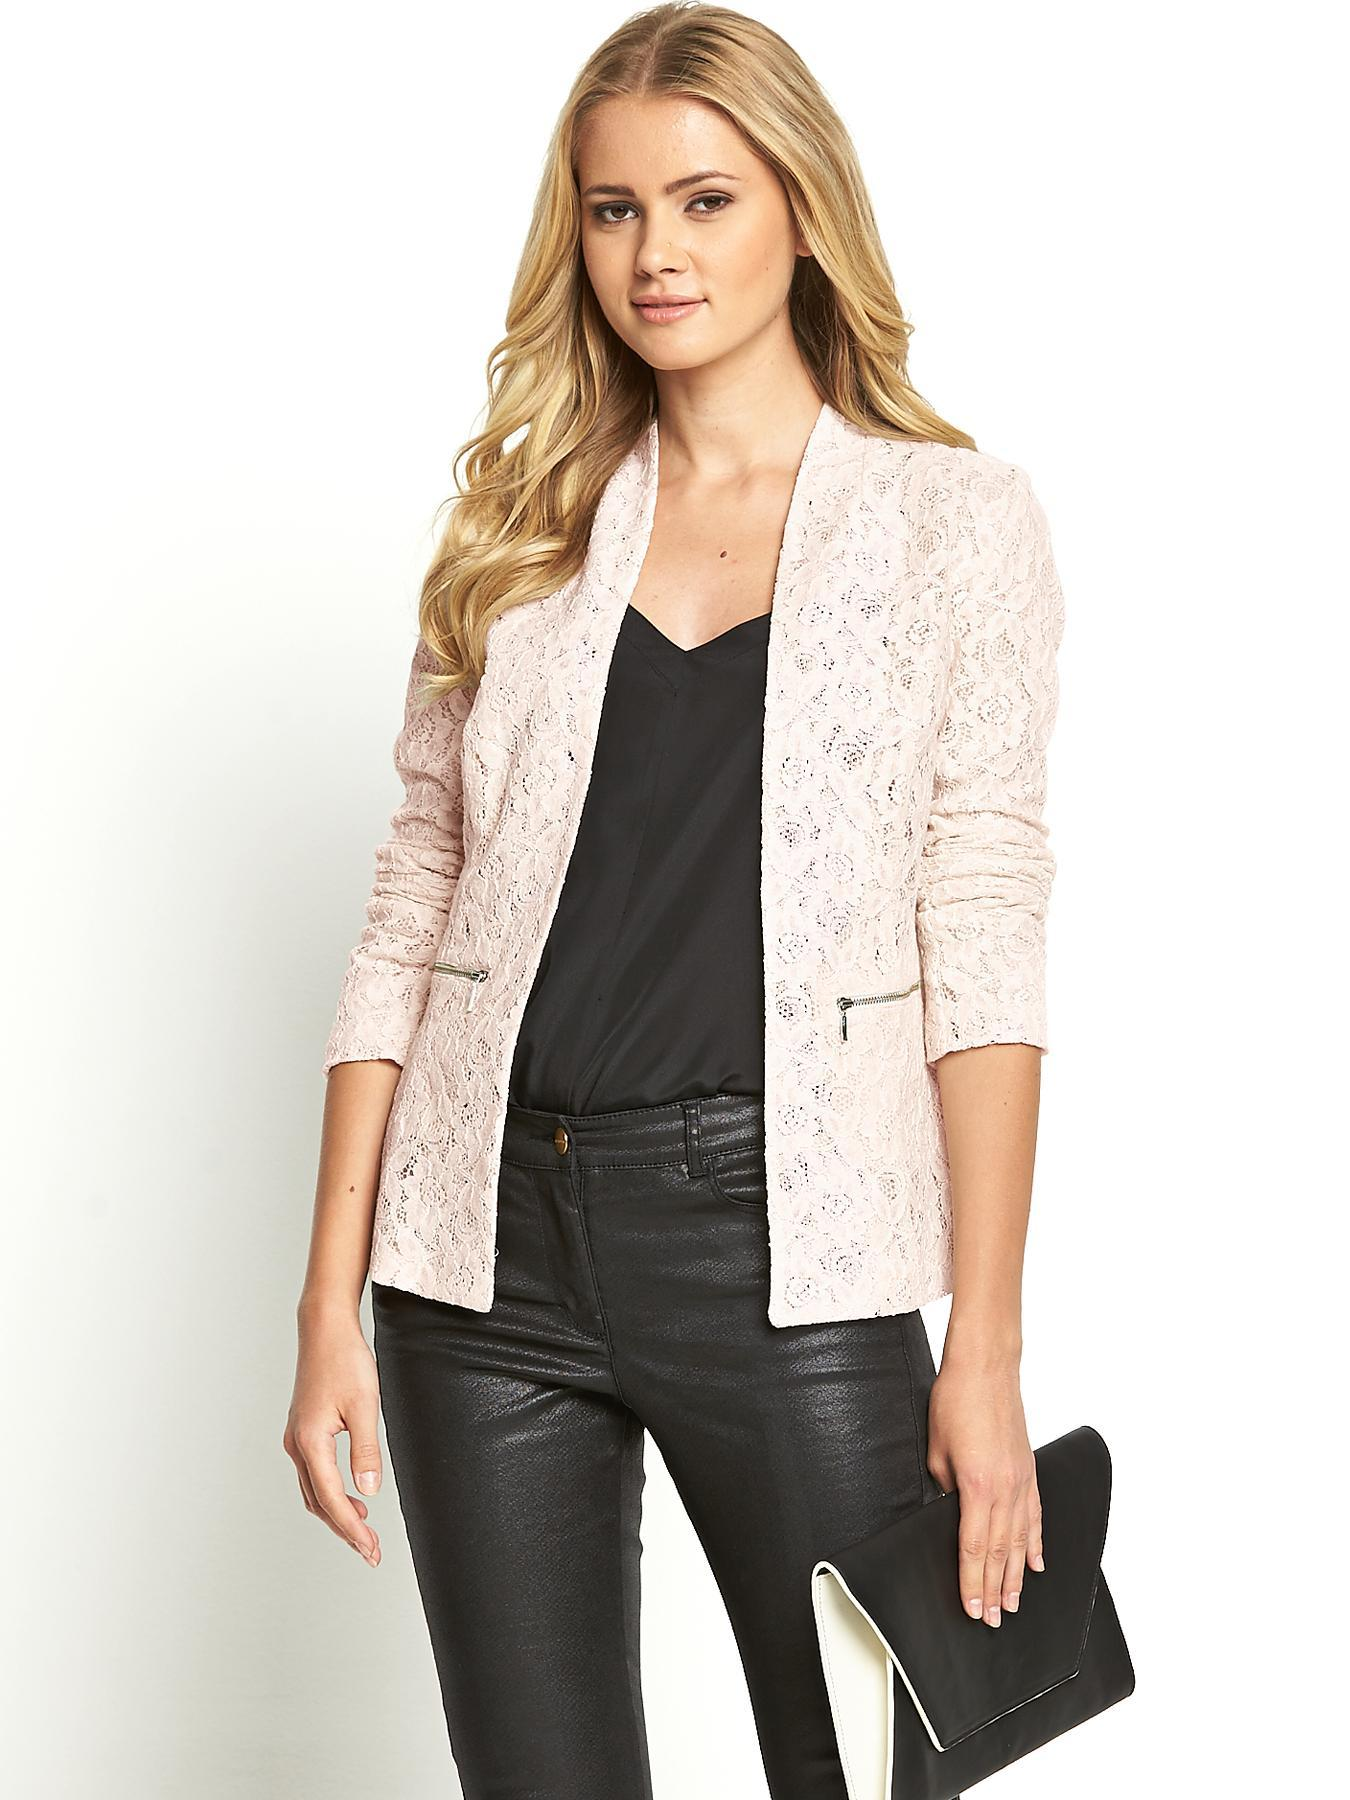 South Lace Jacket - Black, Black,Nude